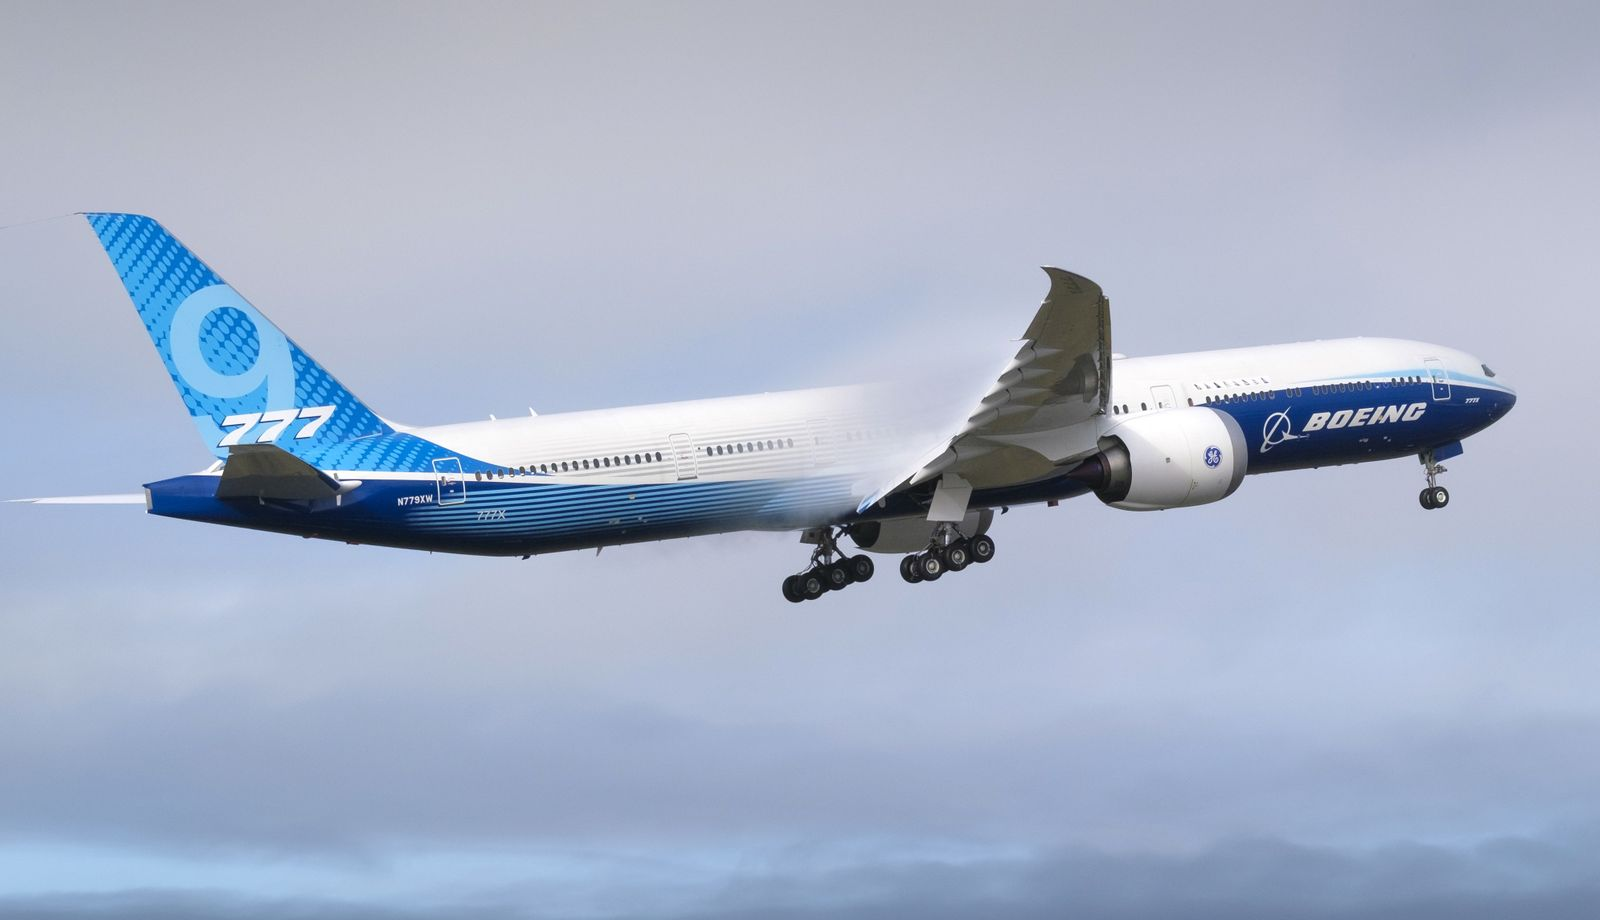 Boeing Conducts Third Attempt At First Flight Of 777X Airplane